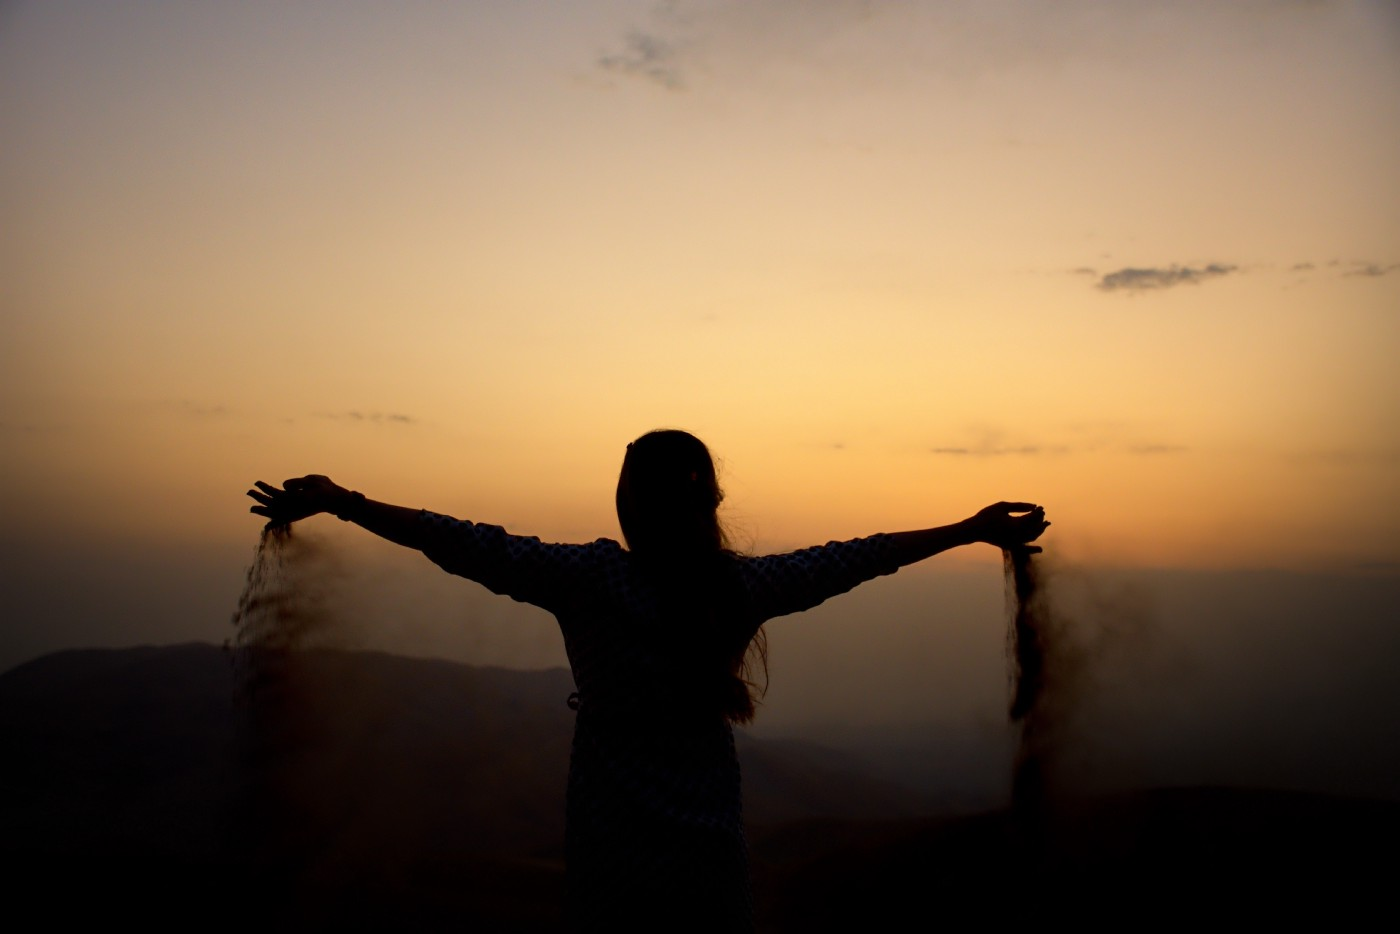 Silhouette of a person holding their arms out wide and letting what appears to be sand fall through their fingers.